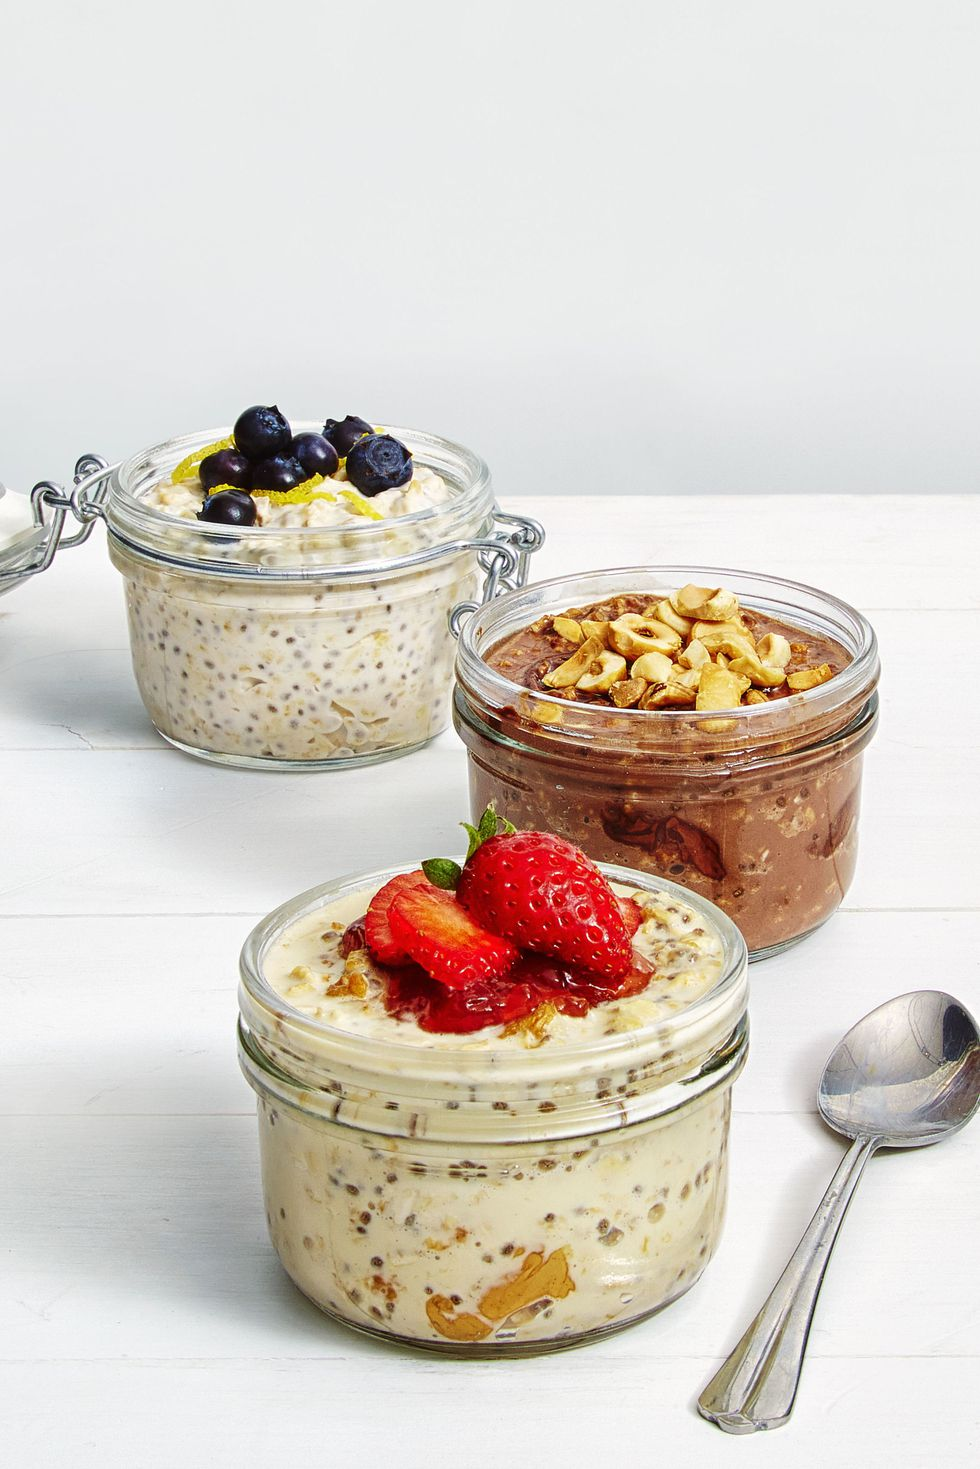 gallery-1475873146-ghk090116yk-overnight-oats.jpg